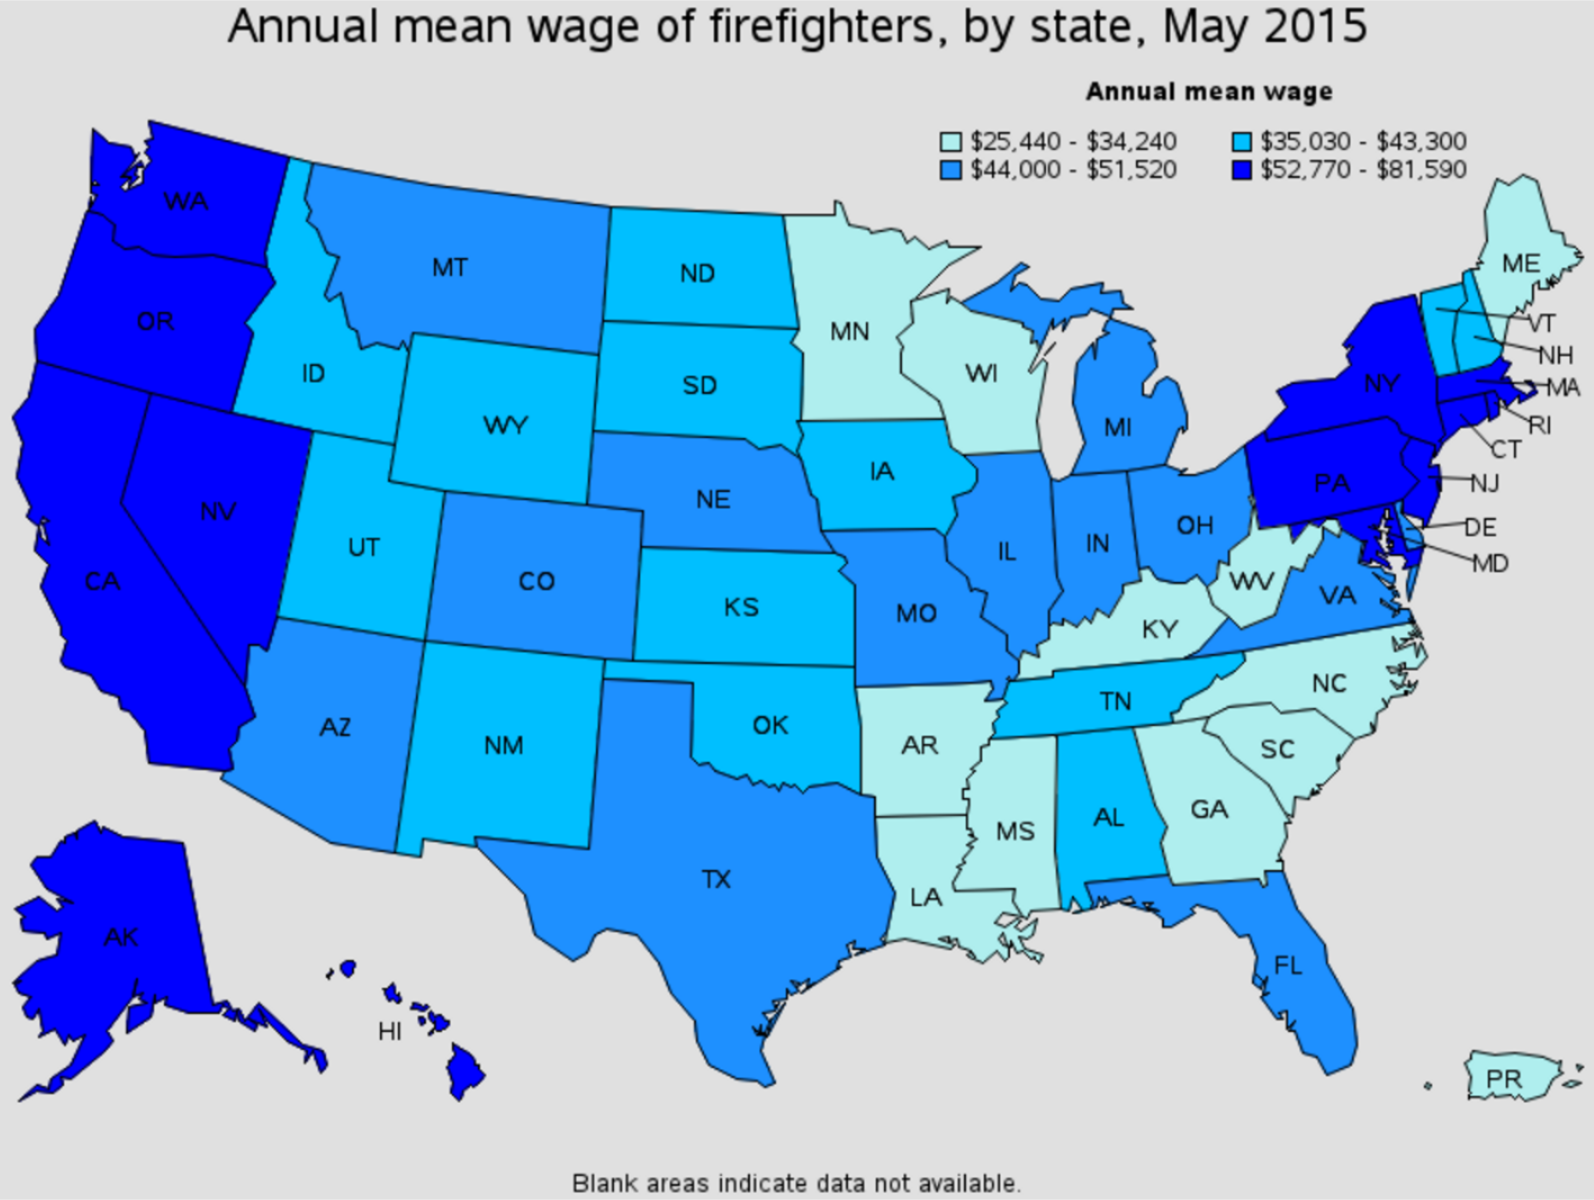 firefighter average salary by state Zionsville Indiana